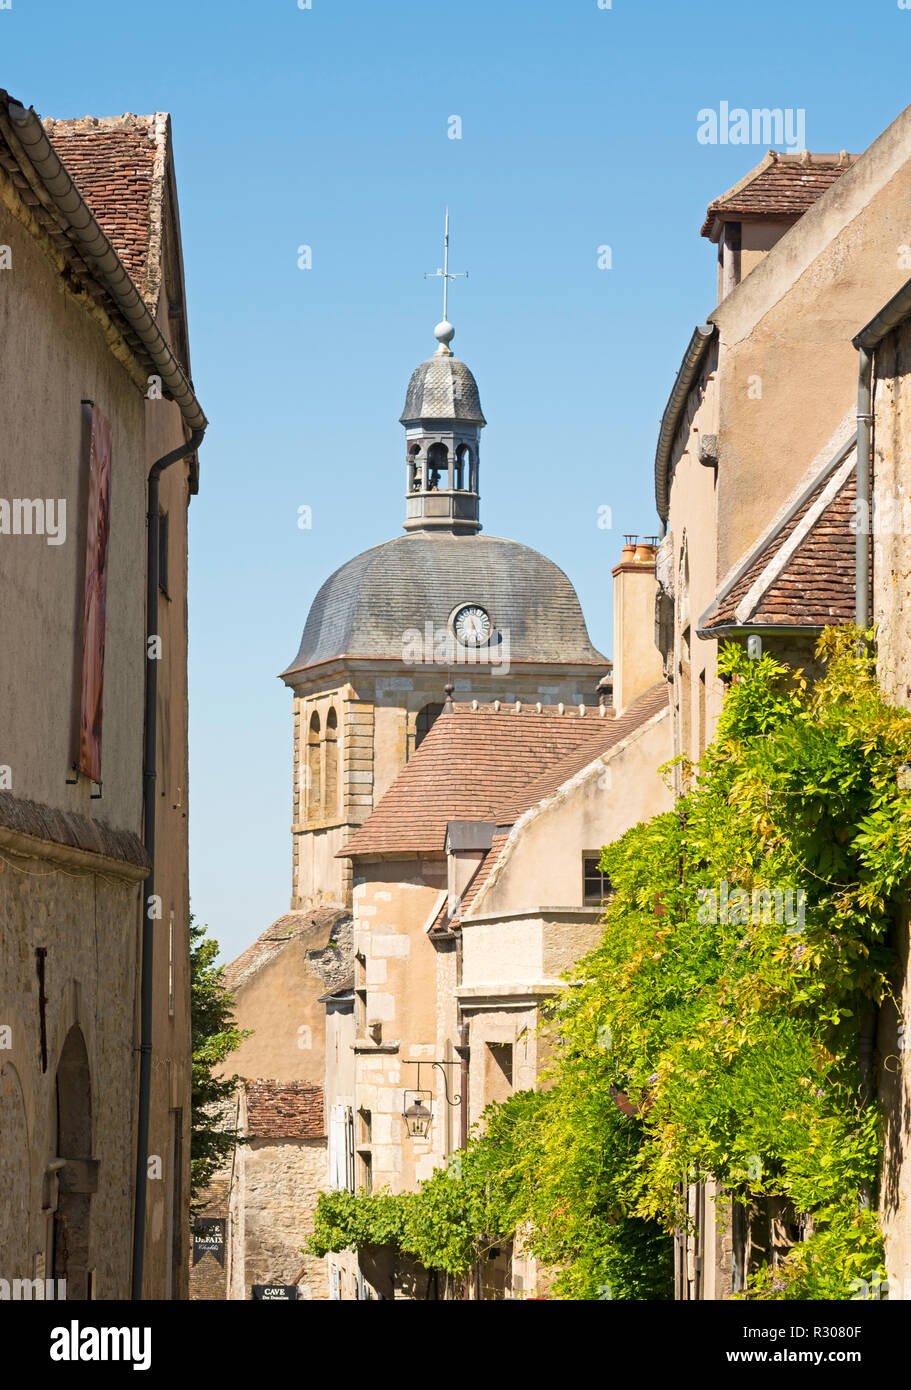 Rue Saint Pierre, Vézelay, Yonne, Burgundy, France, Europe - Stock Image